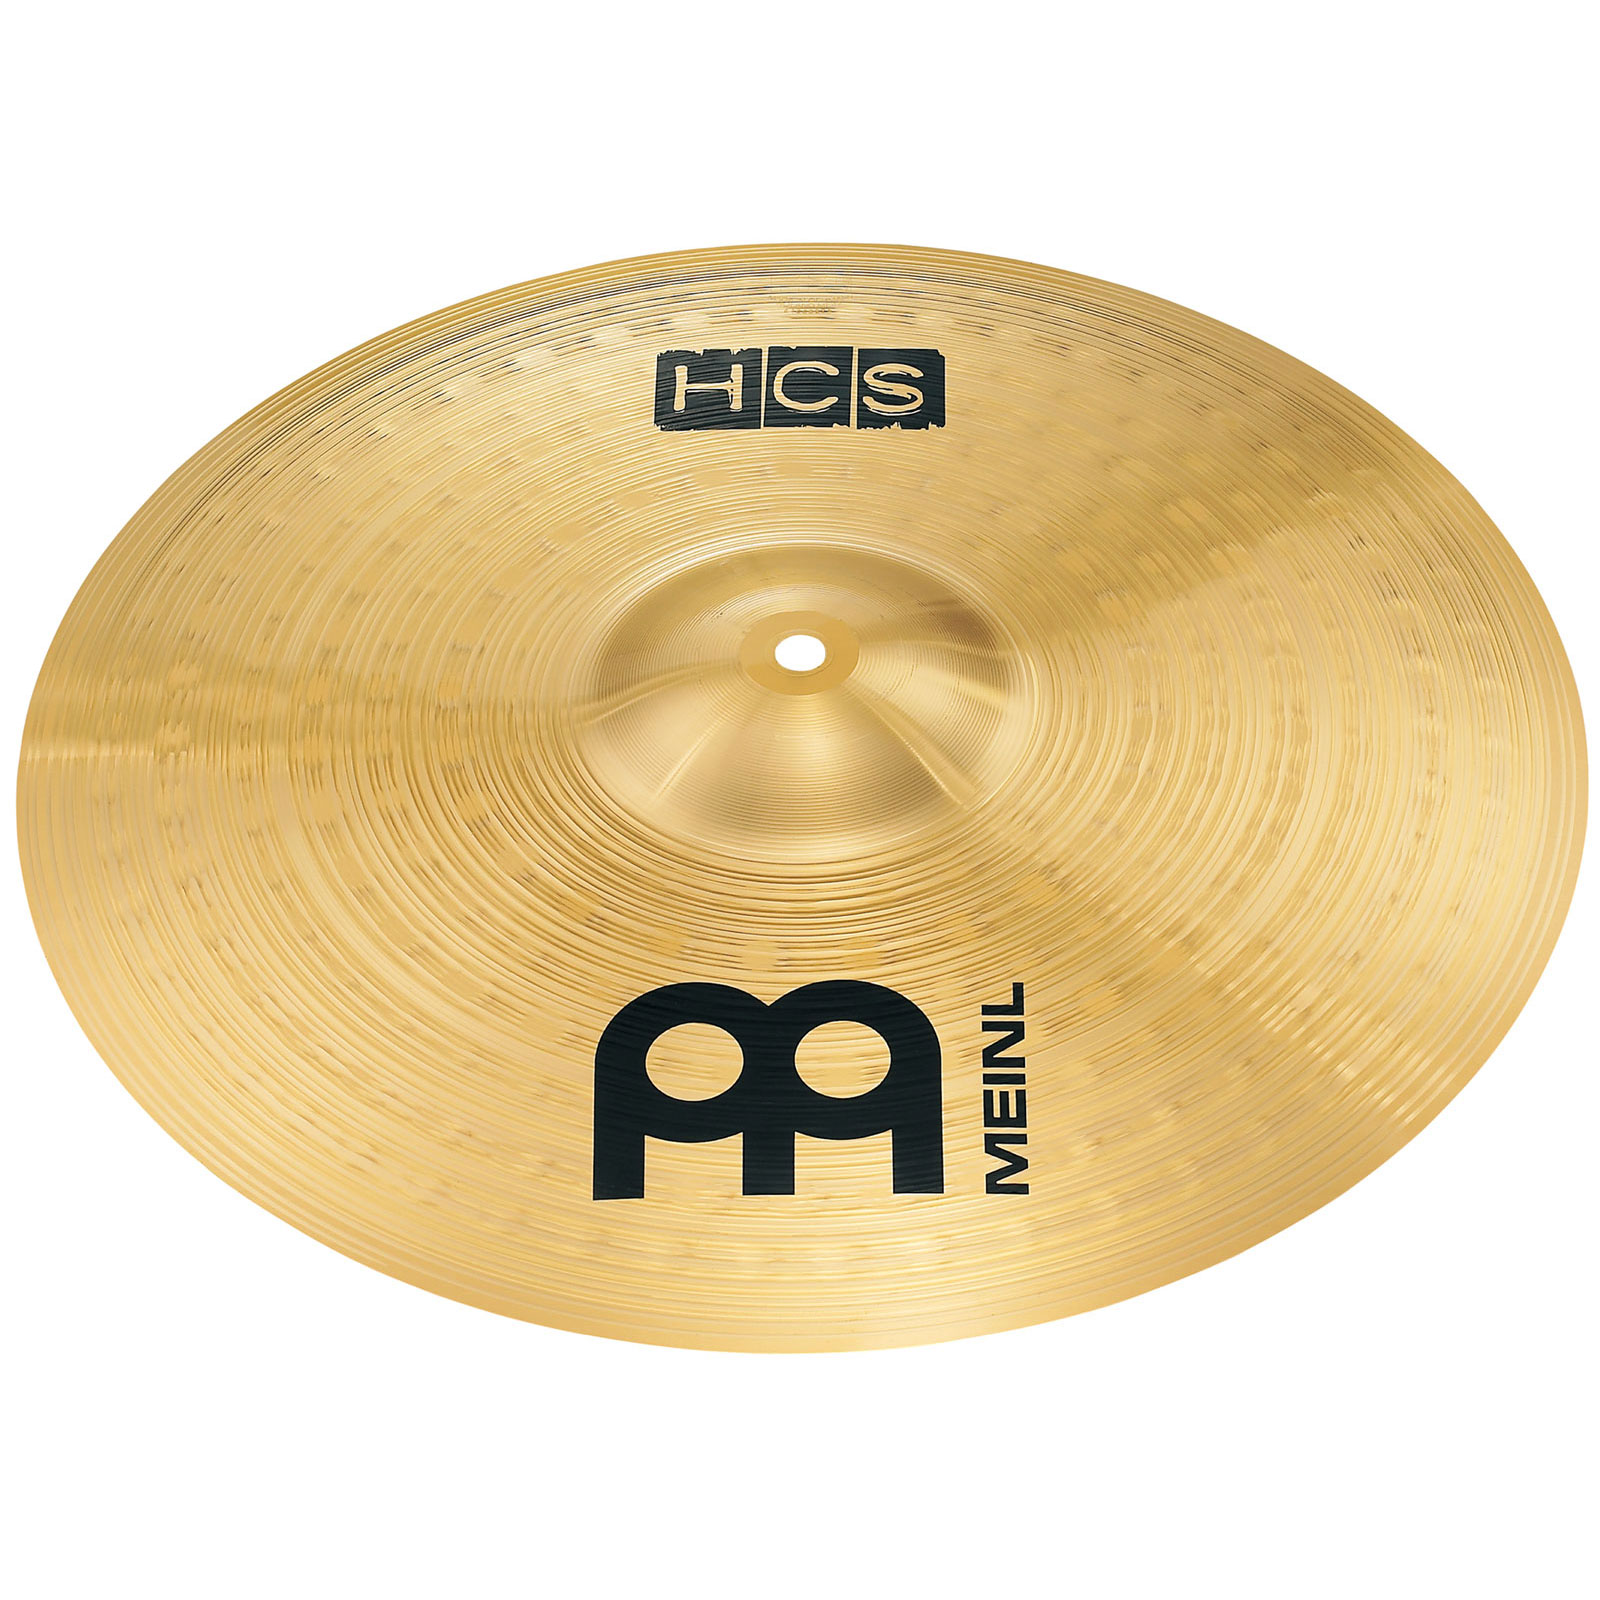 "Meinl 18"" HCS Crash Cymbal"